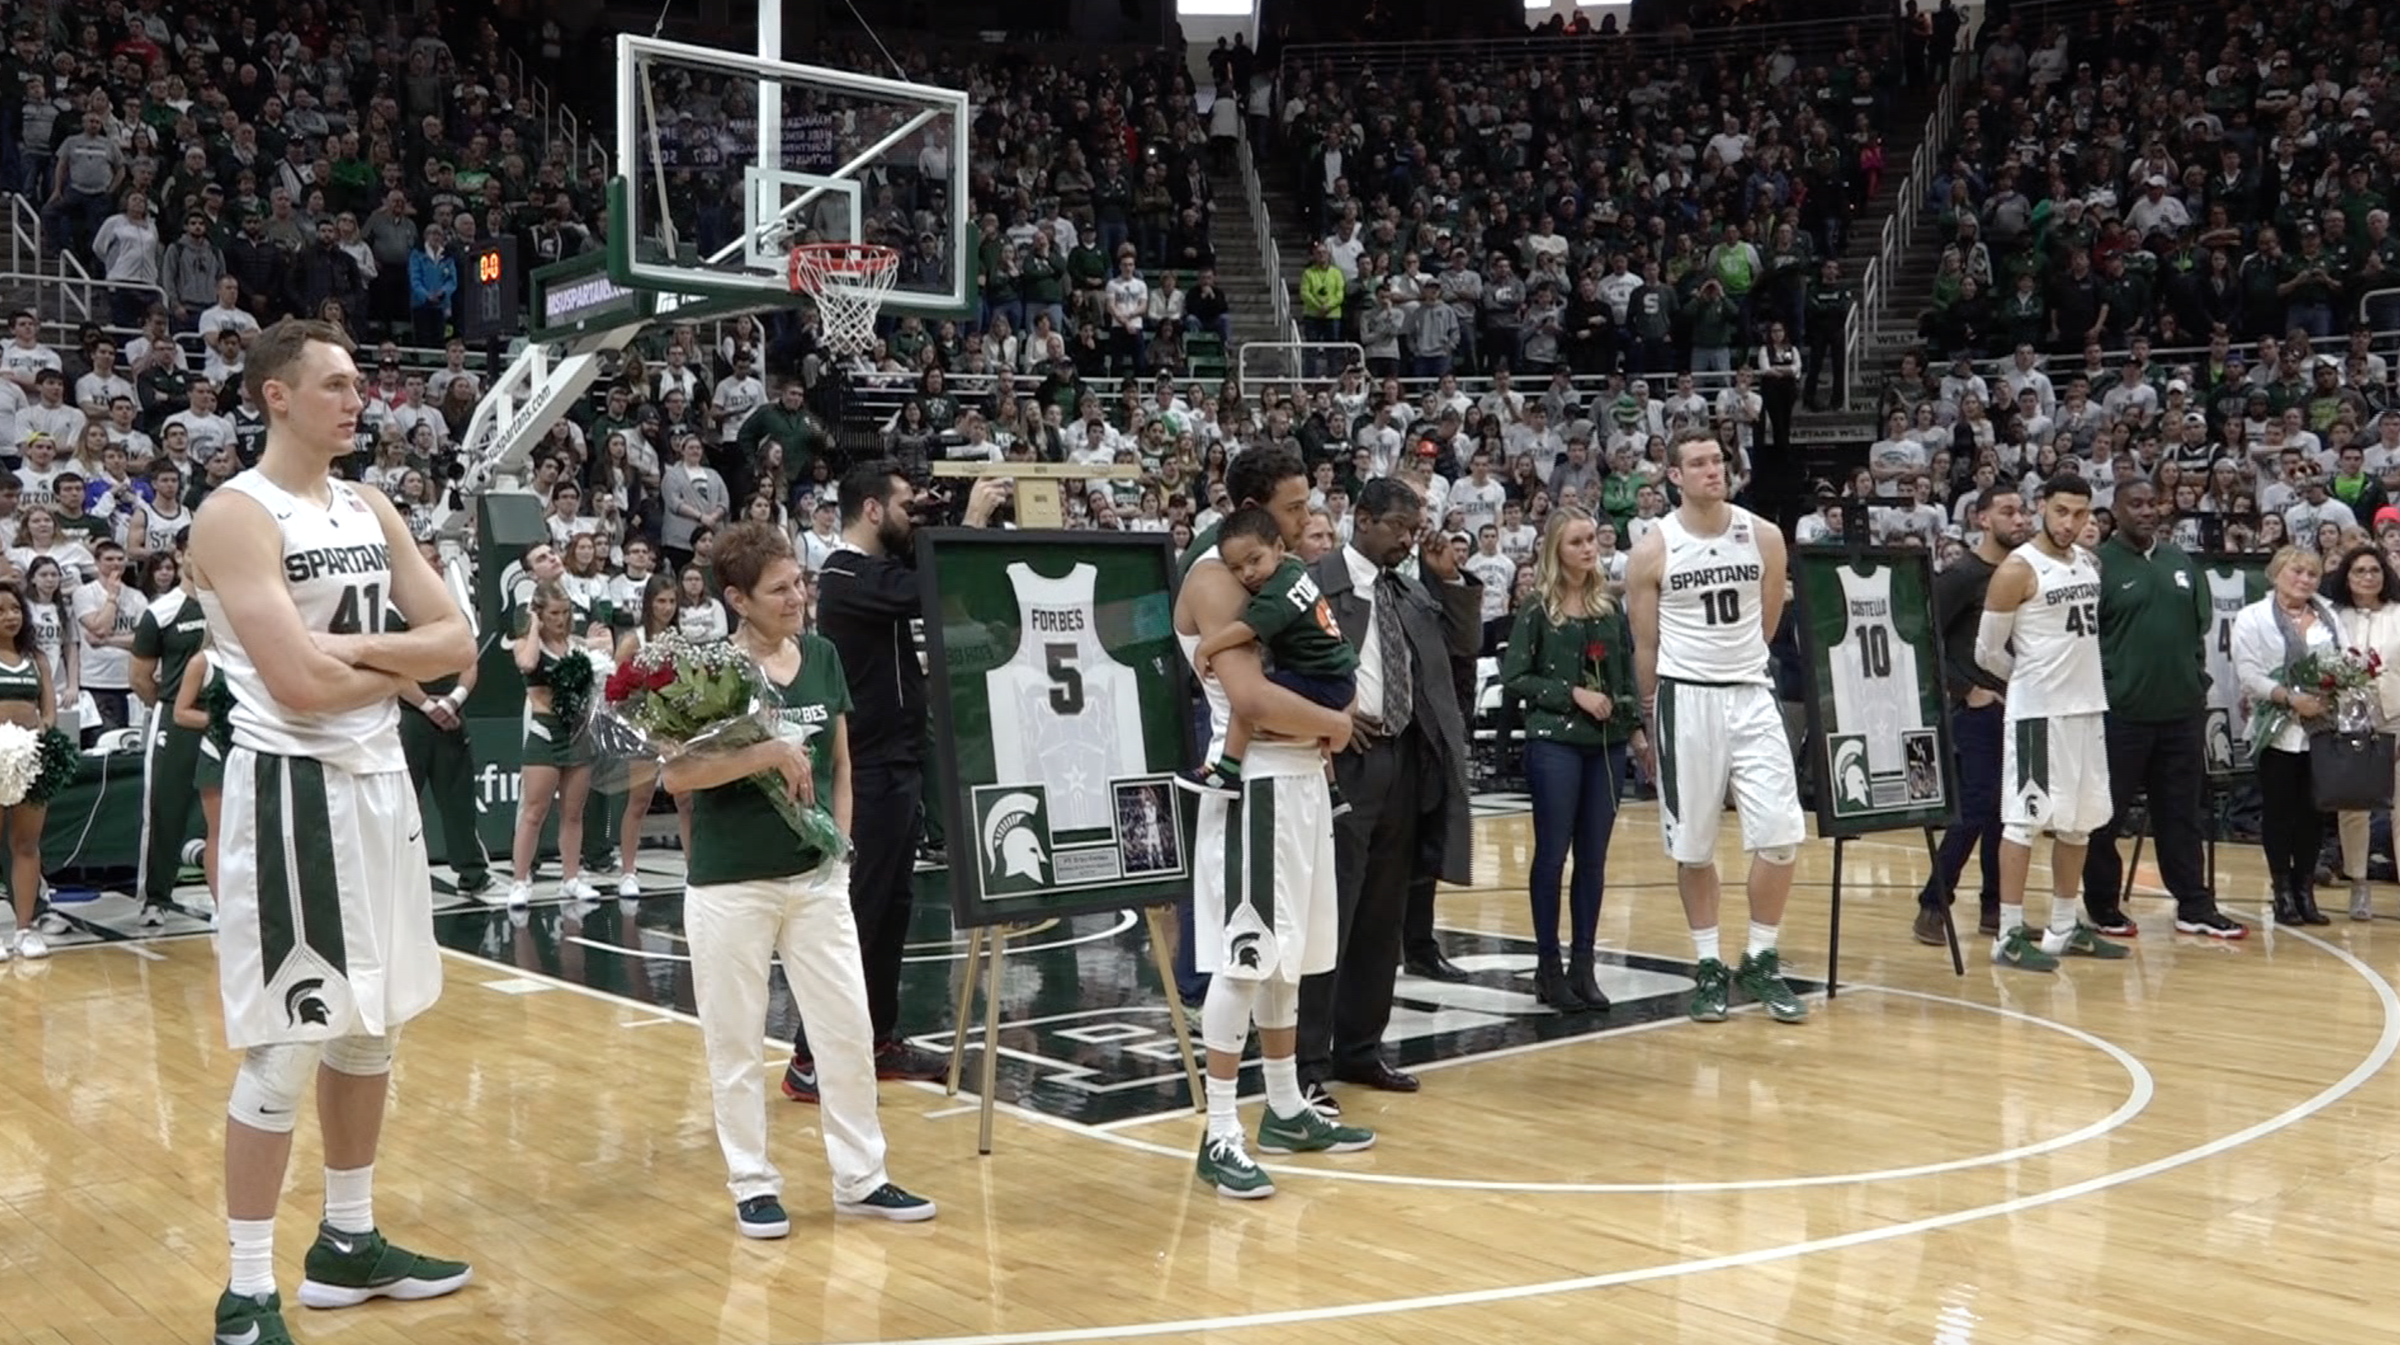 Men's basketball crushes IL, wins Big Ten title on senior night